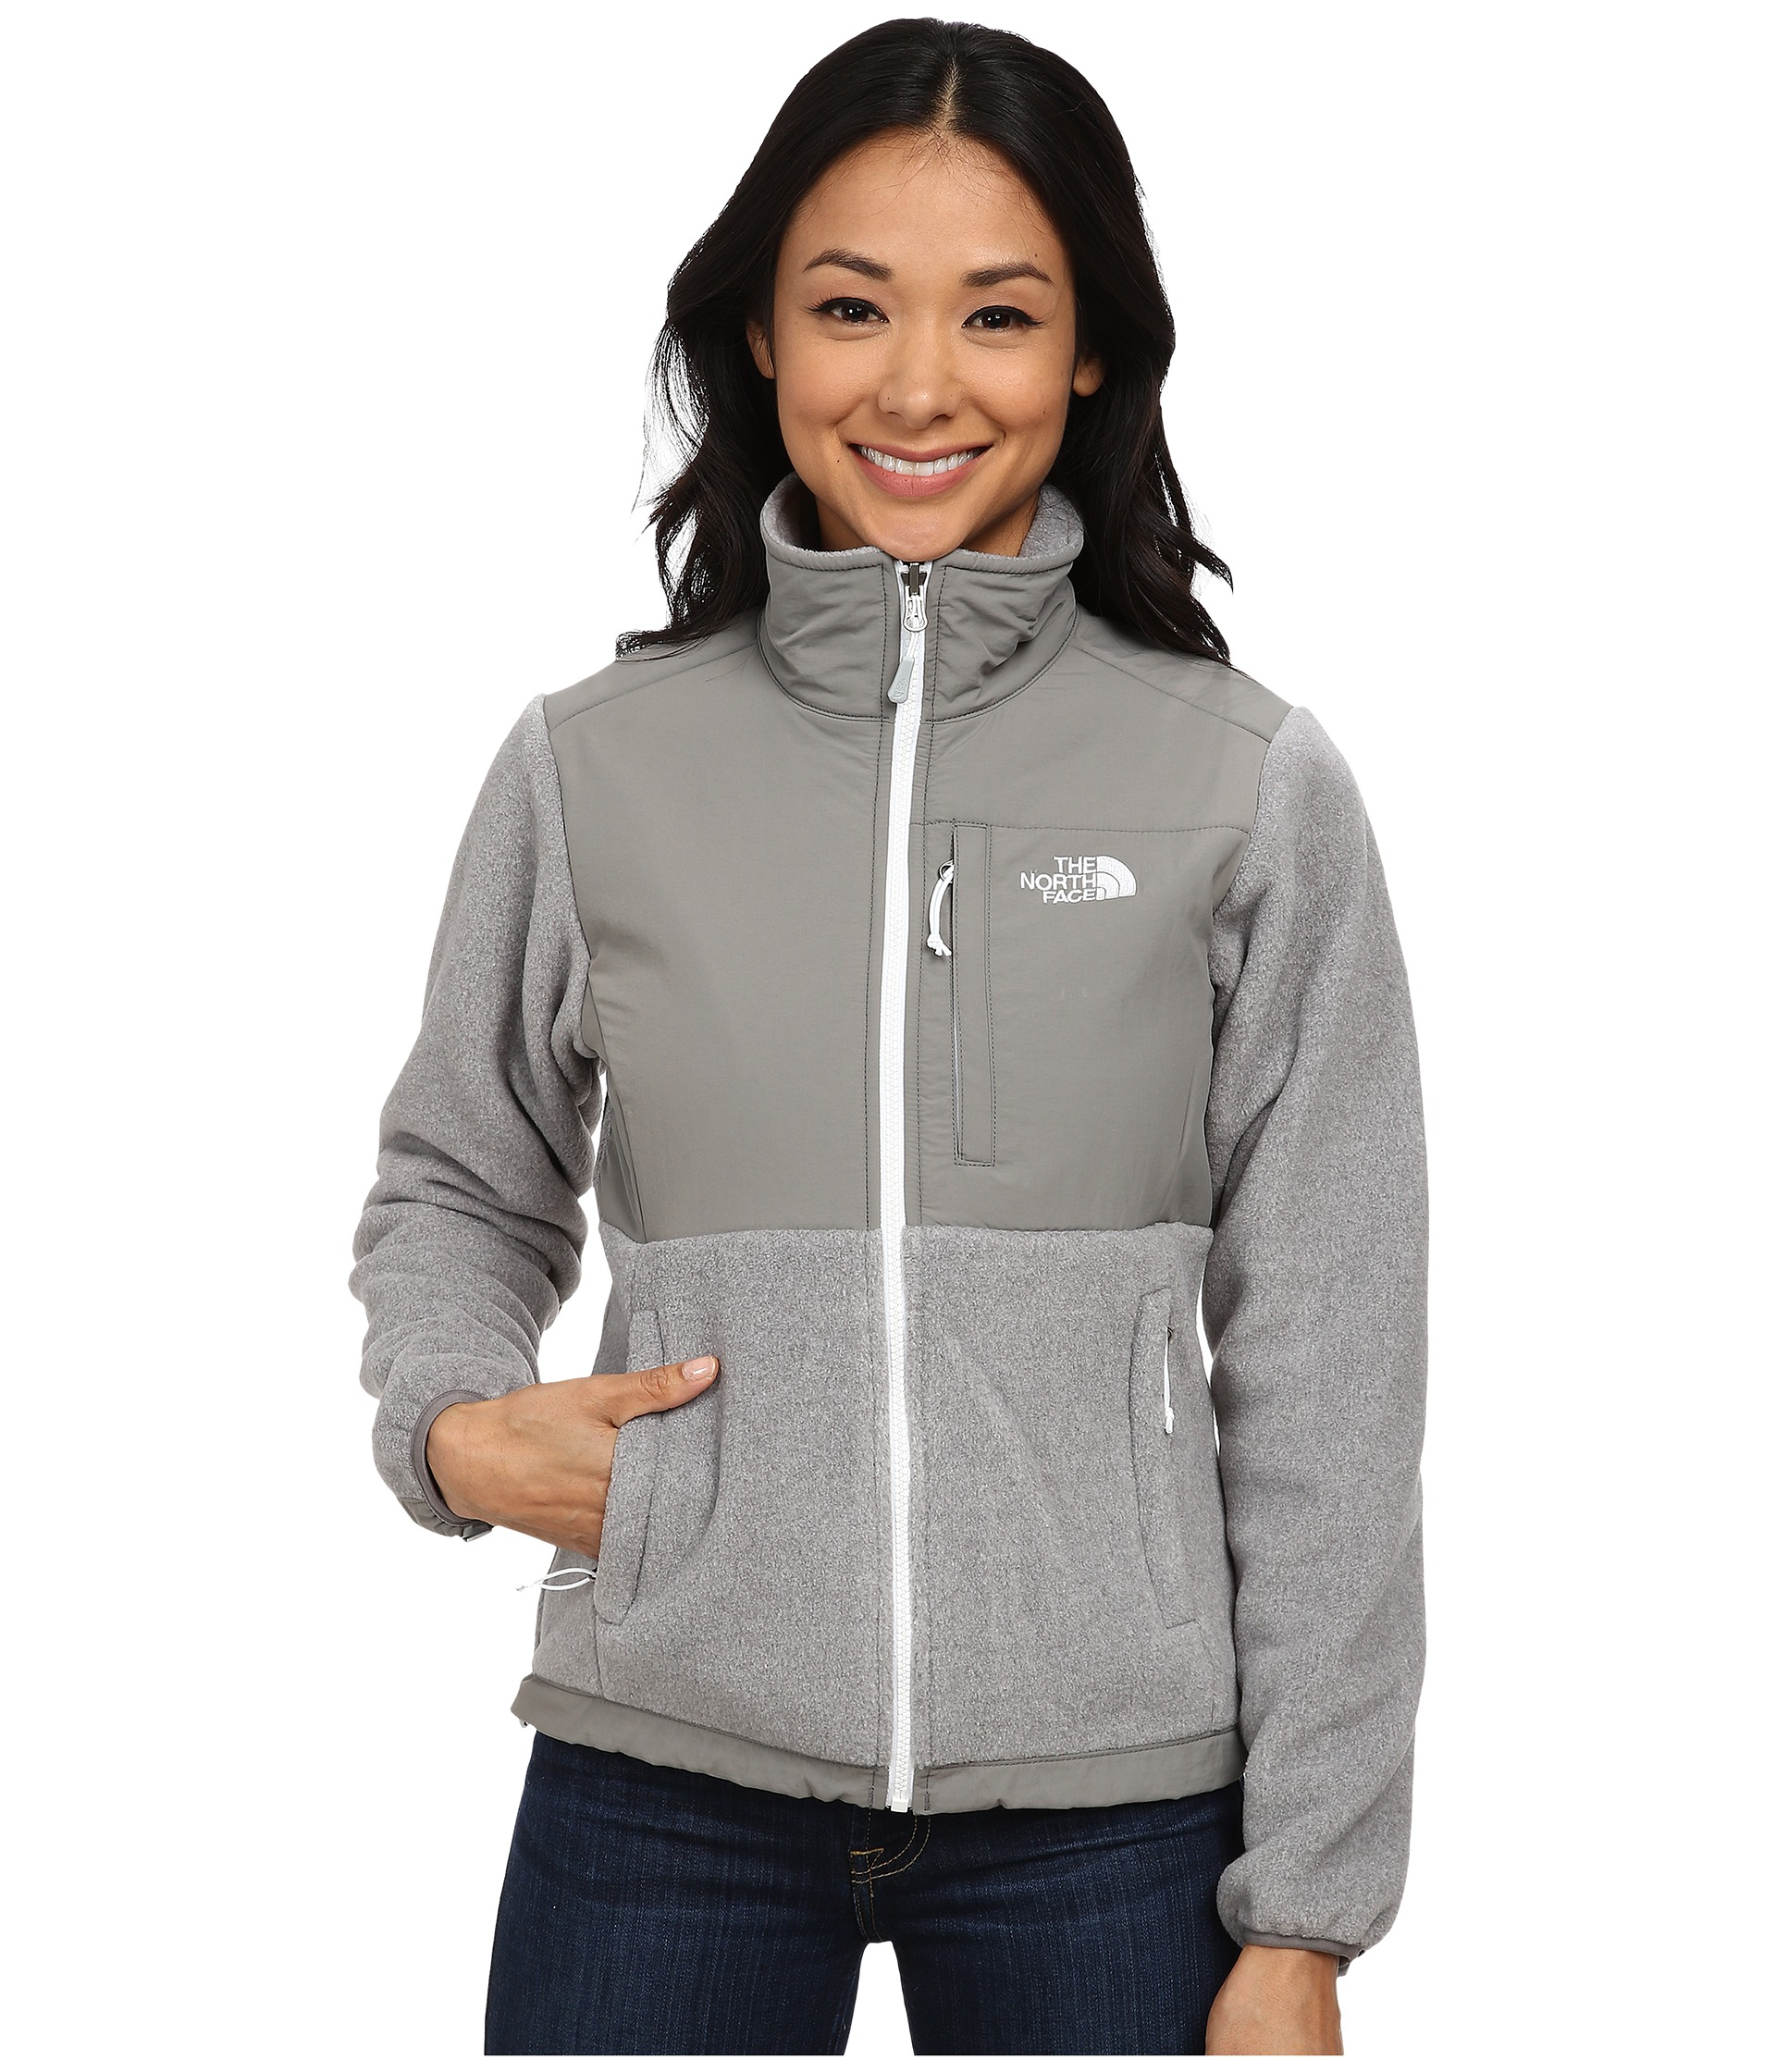 f2331352f68f best price the north face mens international denali jacket outfit ...